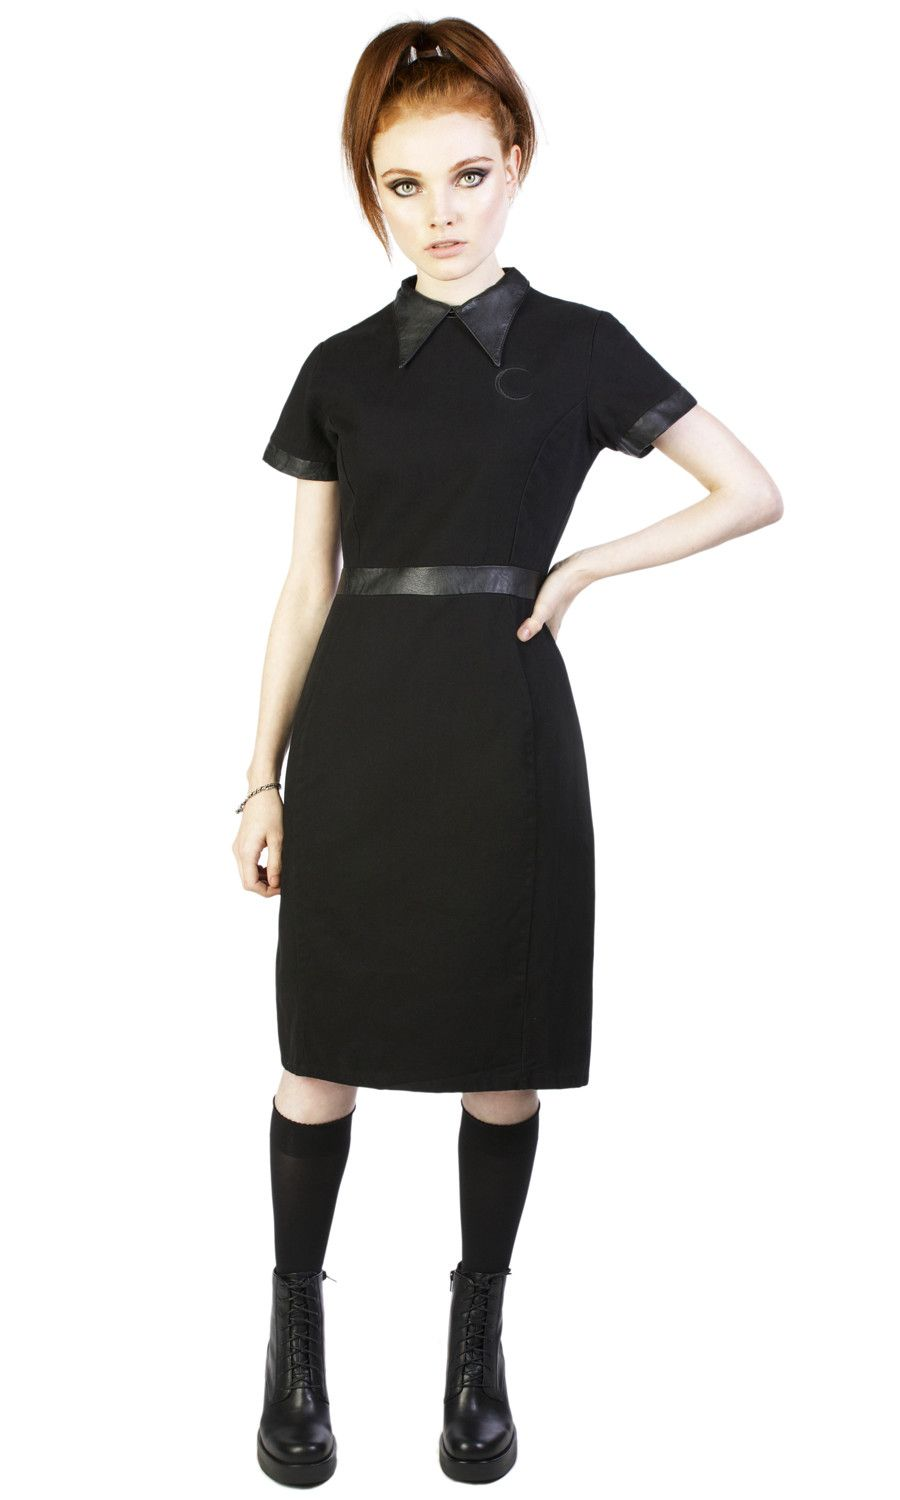 """100% cotton twill short sleeve dress with false leather collar and back yoke. Front chest crescent moon embroidery. Back zip fastening. Form-fitting so you may need to order a size up from your usual dress size. Model is 5' 6"""" and is wearing a size S TAG YOUR PURCHASE: #disturbiaclothing IN STOCK & SHIPS WITHIN 24 HOURS"""